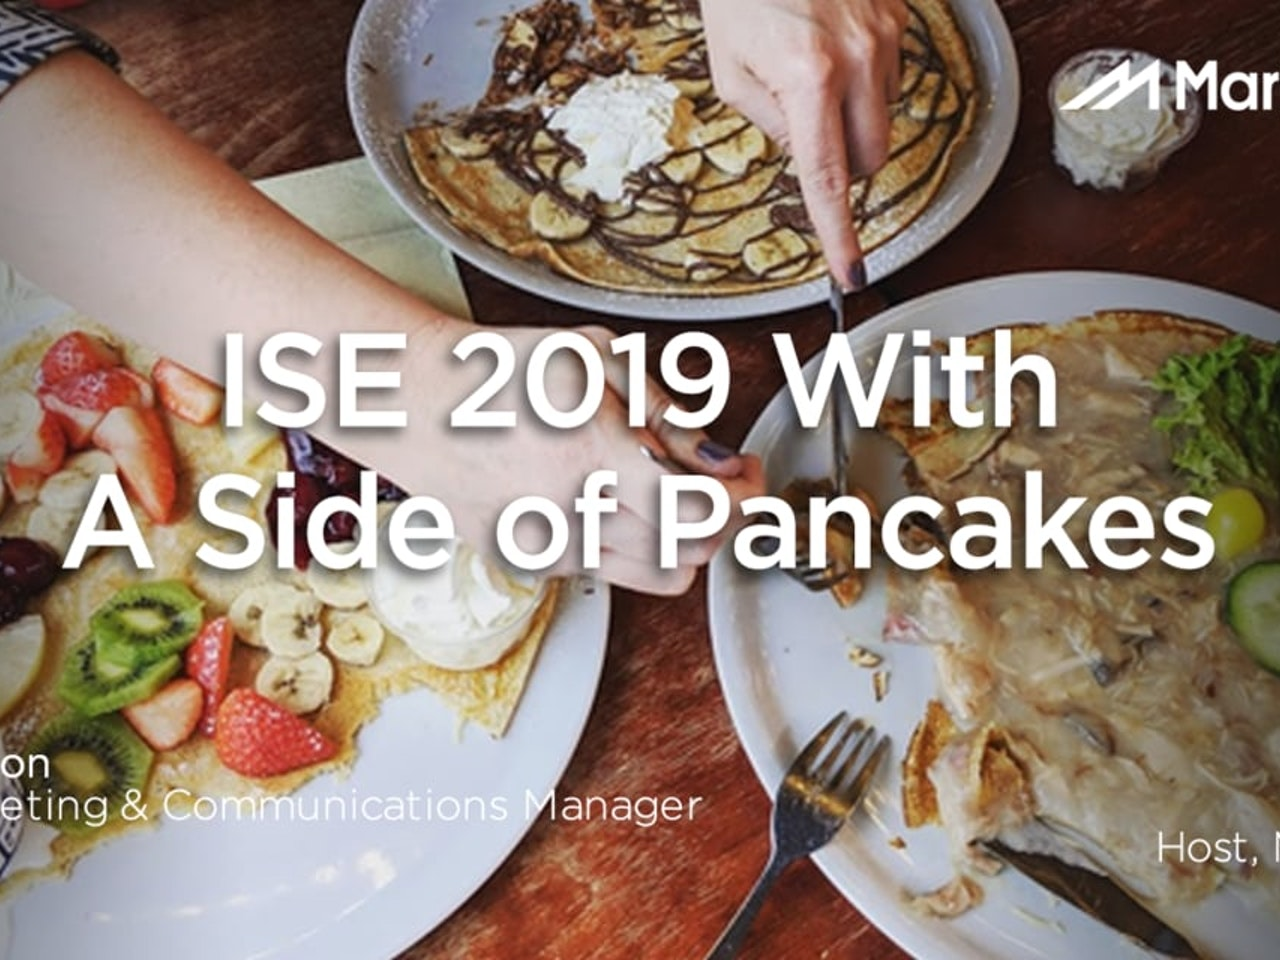 ISE 2019 With A Side of Pancakes